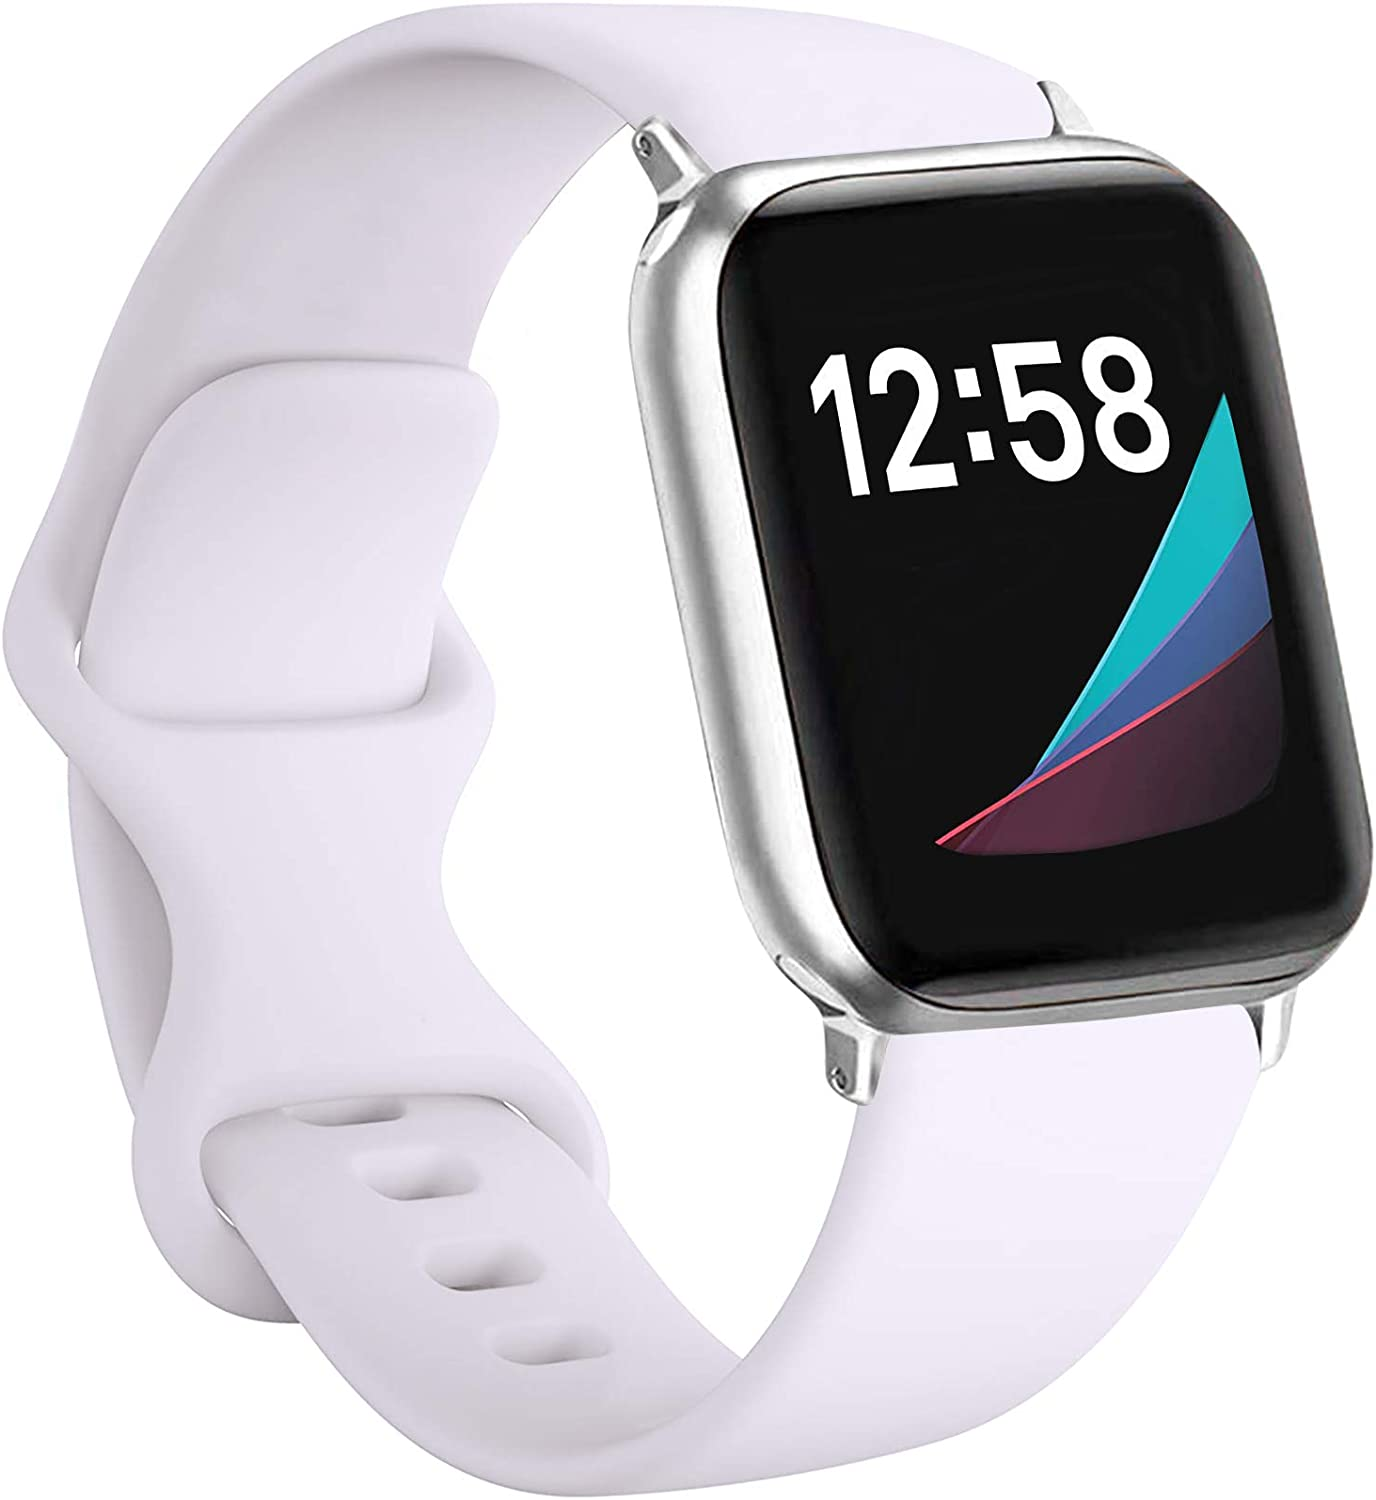 LAXMR Compatible with Apple Watch Band 38mm 40mm 42mm 44mm,Sport Silicone Band Replacement Strap for Series 6, Series 5, Series 4, Series 3, Series 2, Series 1 S/M, M/L (White, 42/44mm-M/L)